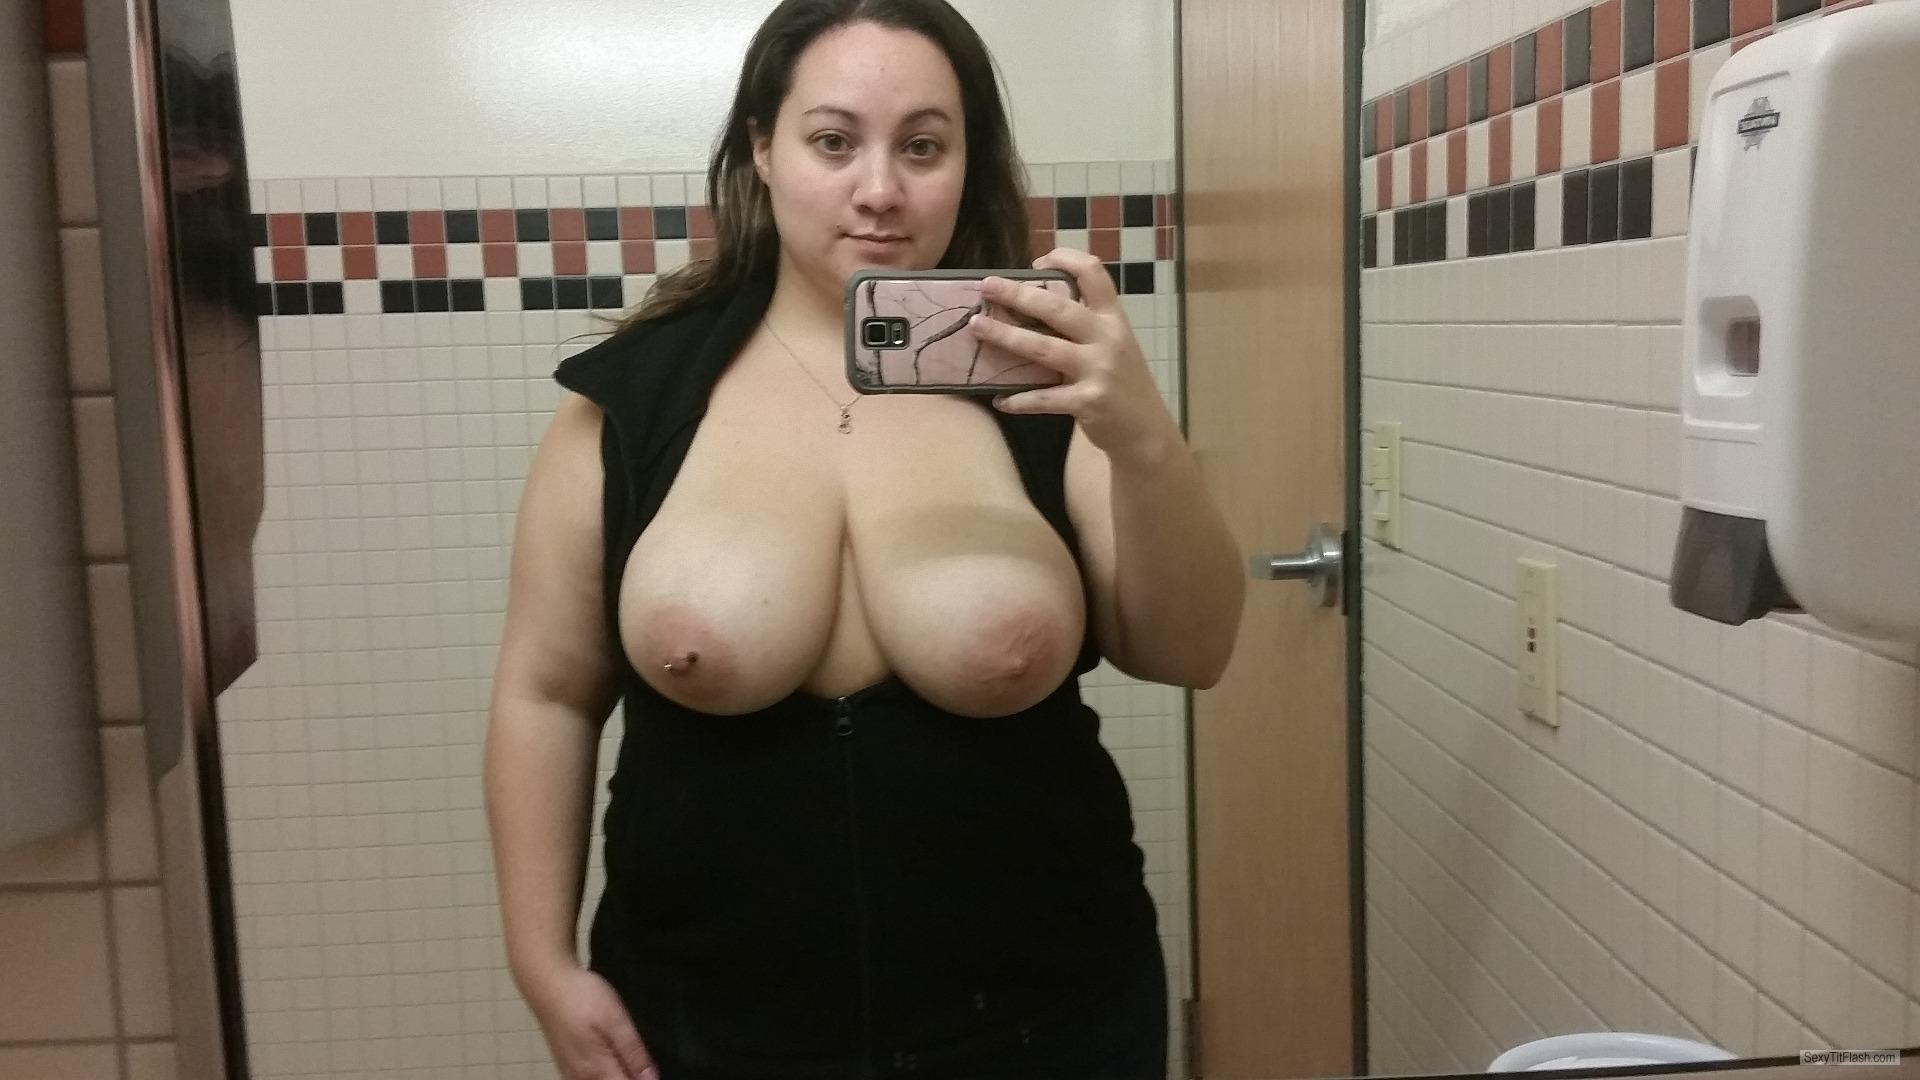 Tit Flash: My Extremely Big Tits (Selfie) - Topless Wife from United StatesPierced Nipples